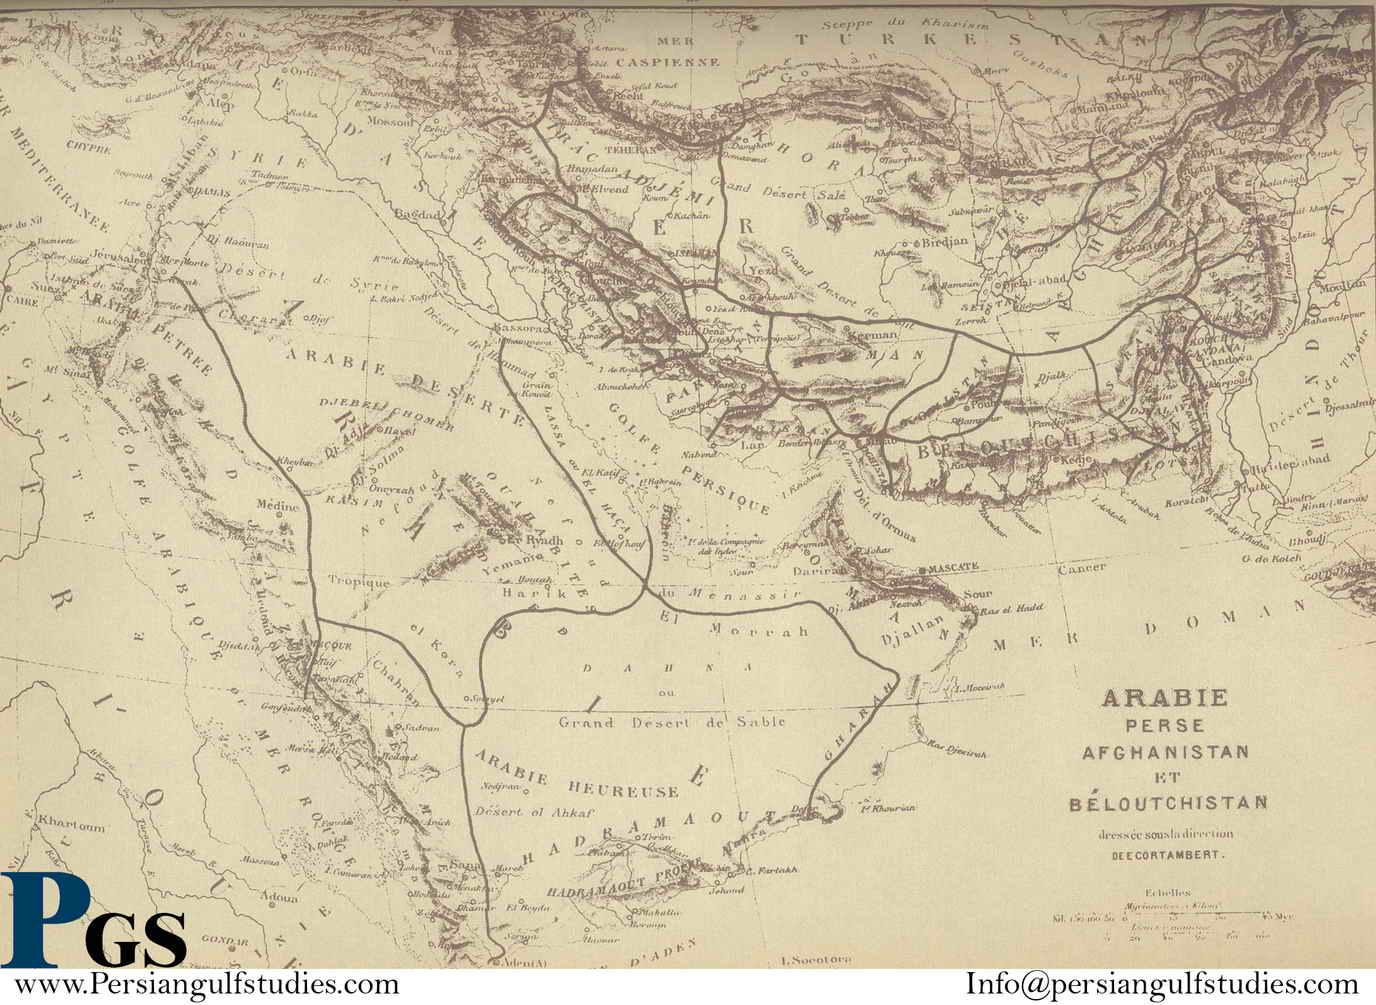 From 1700 A.D to the Modern|From 1700 A.D to the Modern persian gulf map